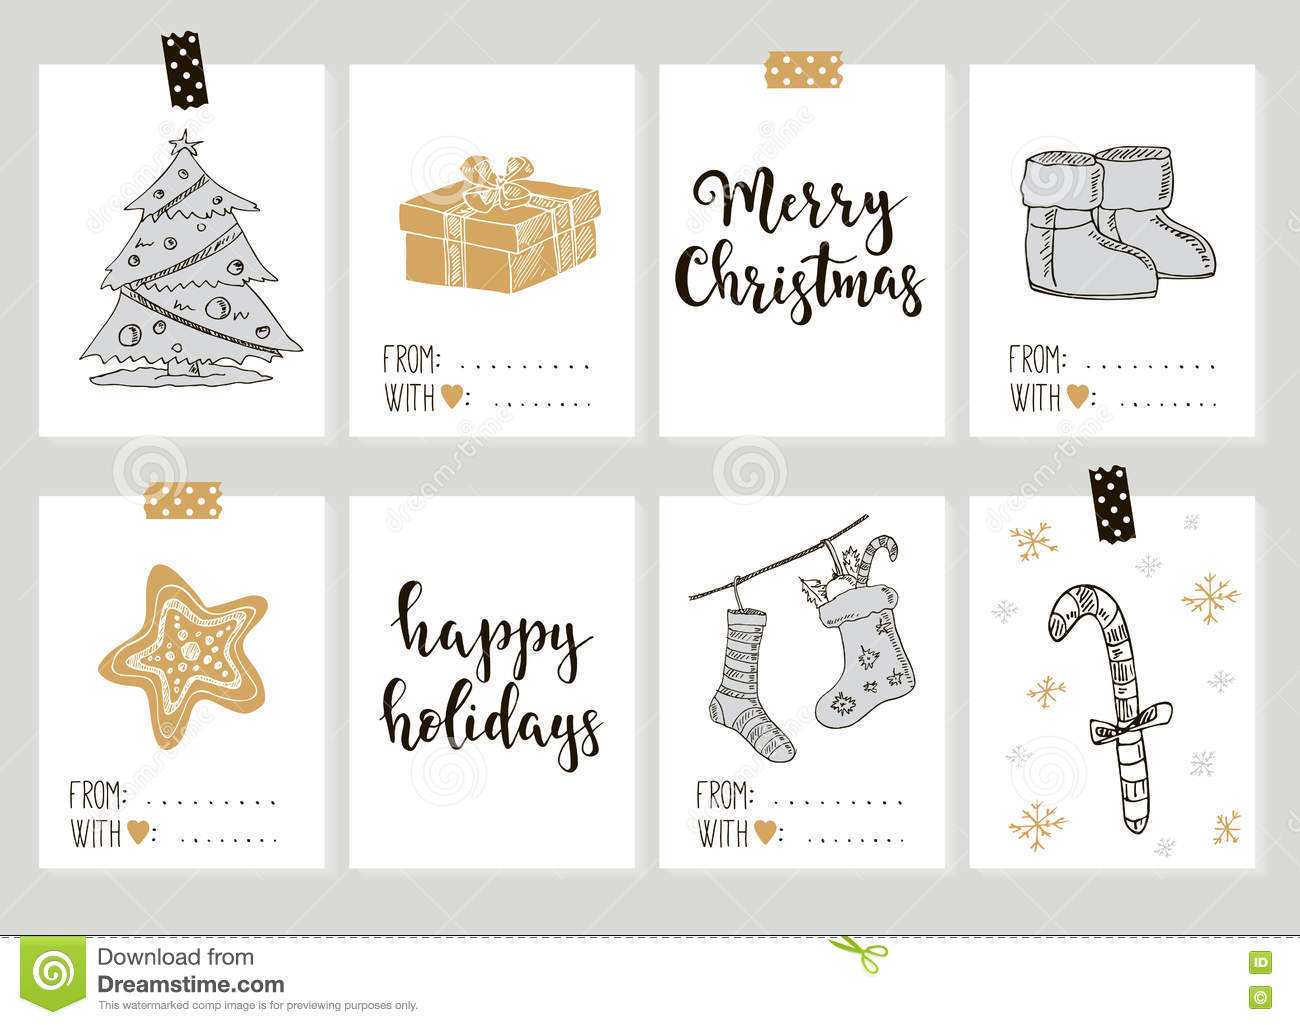 merry christmas and happy new year vintage gift tags cards with calligraphy stock vector. Black Bedroom Furniture Sets. Home Design Ideas